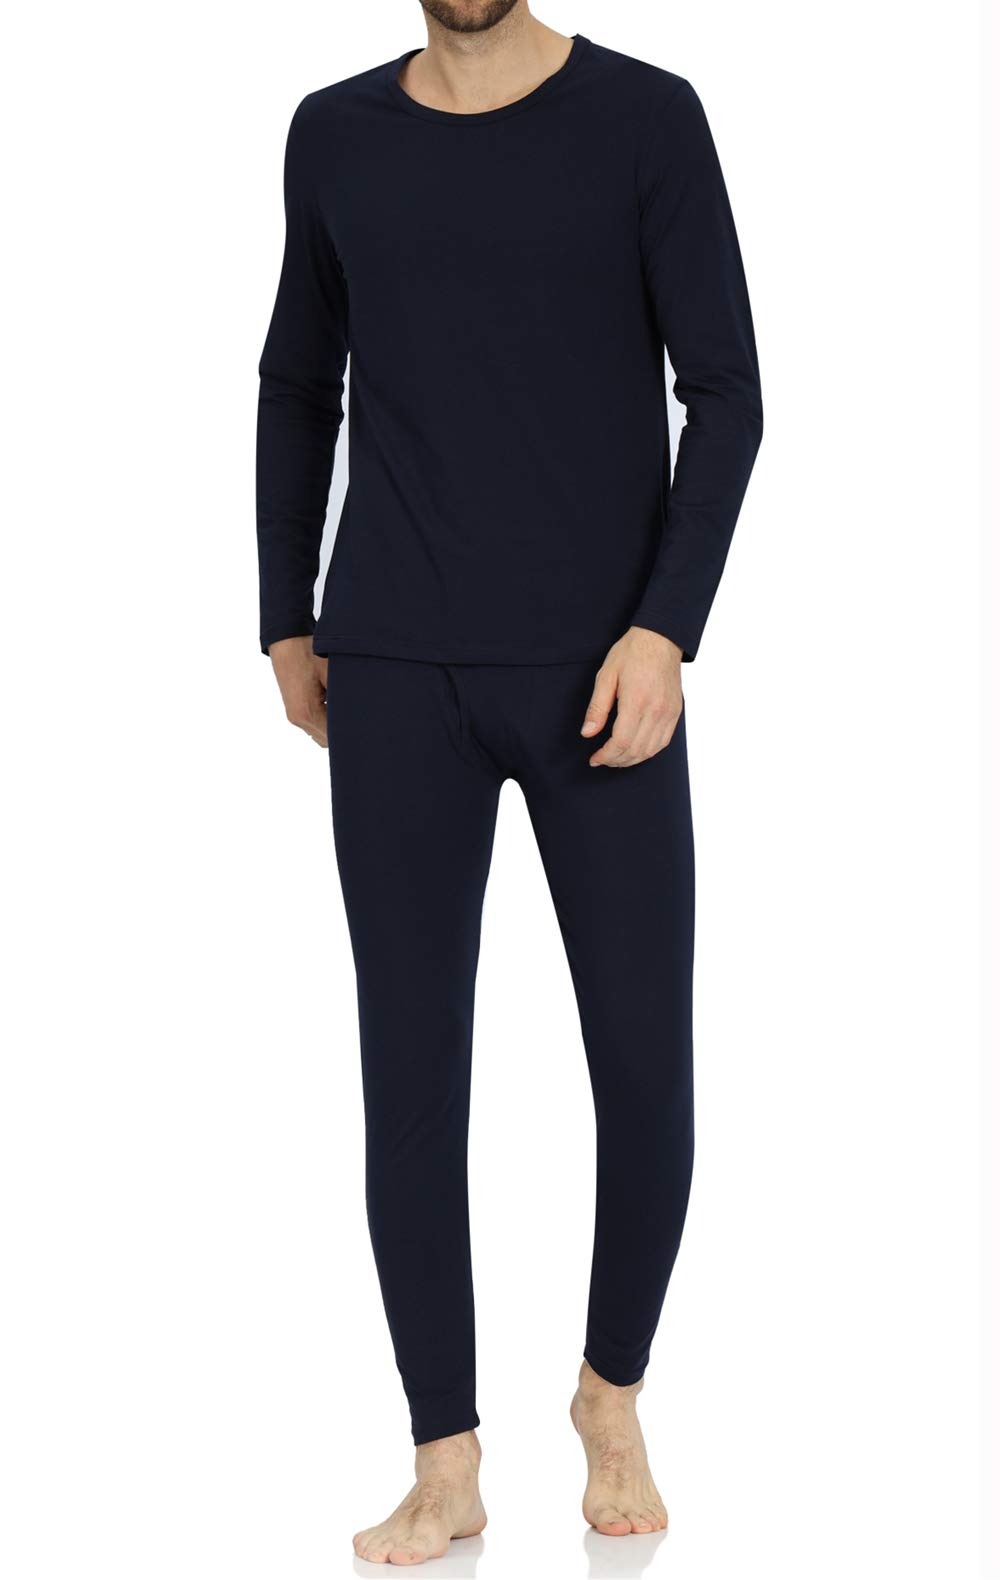 Men's Soft Thermal Underwear Set Cotton Long Johns Underwear Base Layer Top and Bottom Navy by FTIMILD